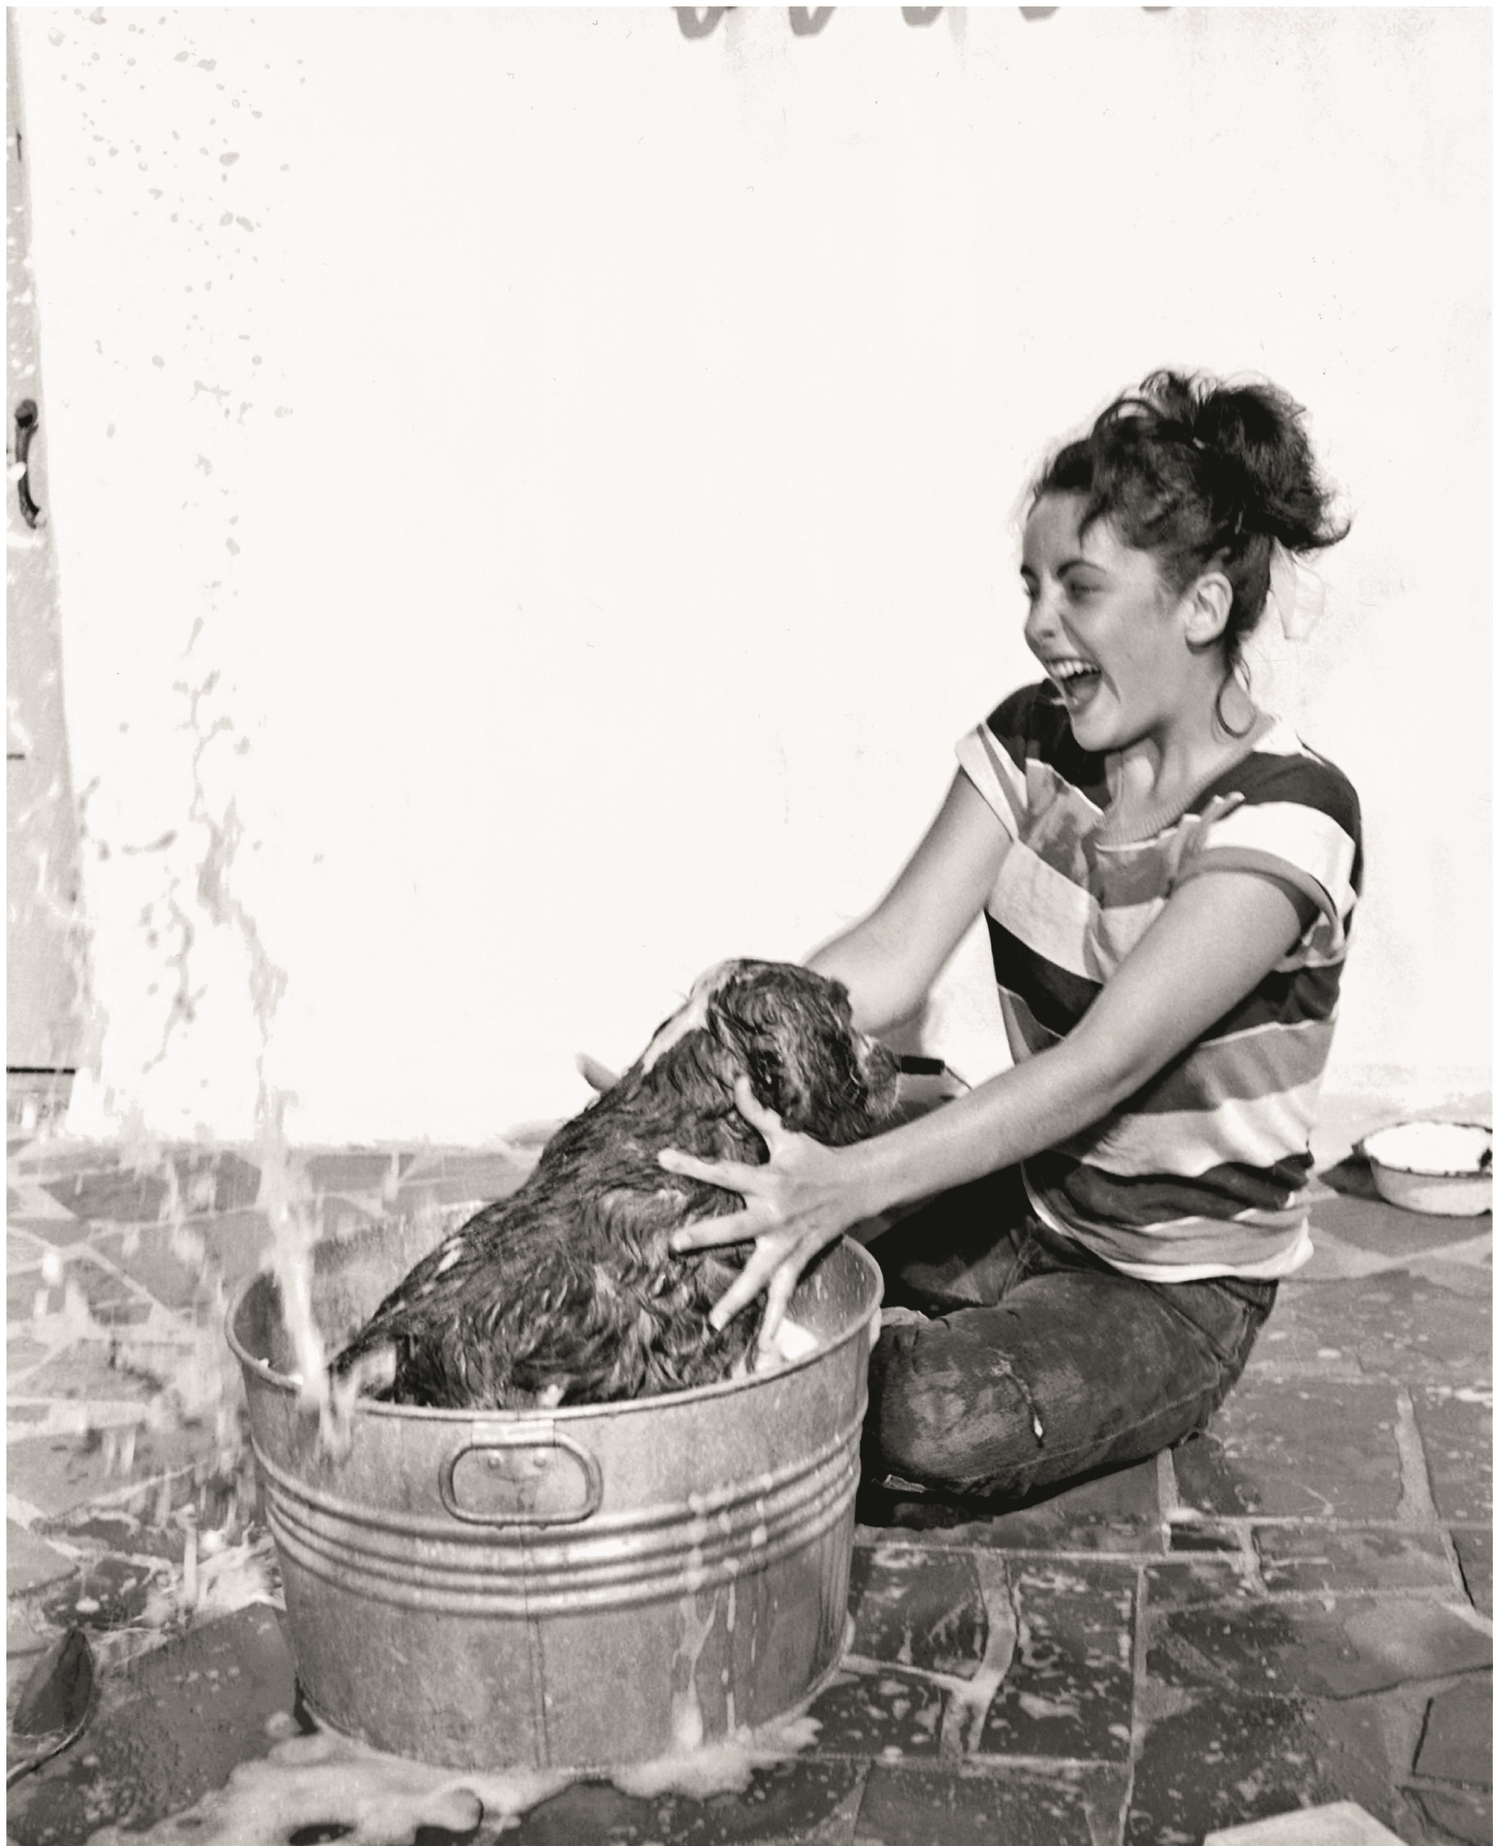 Elizabeth Taylor, MGM, 1950 Throughout her life Elizabeth Taylor was devoted to her dogs, and is seen here attempting to bathe her Cocker Spaniel, Amy.